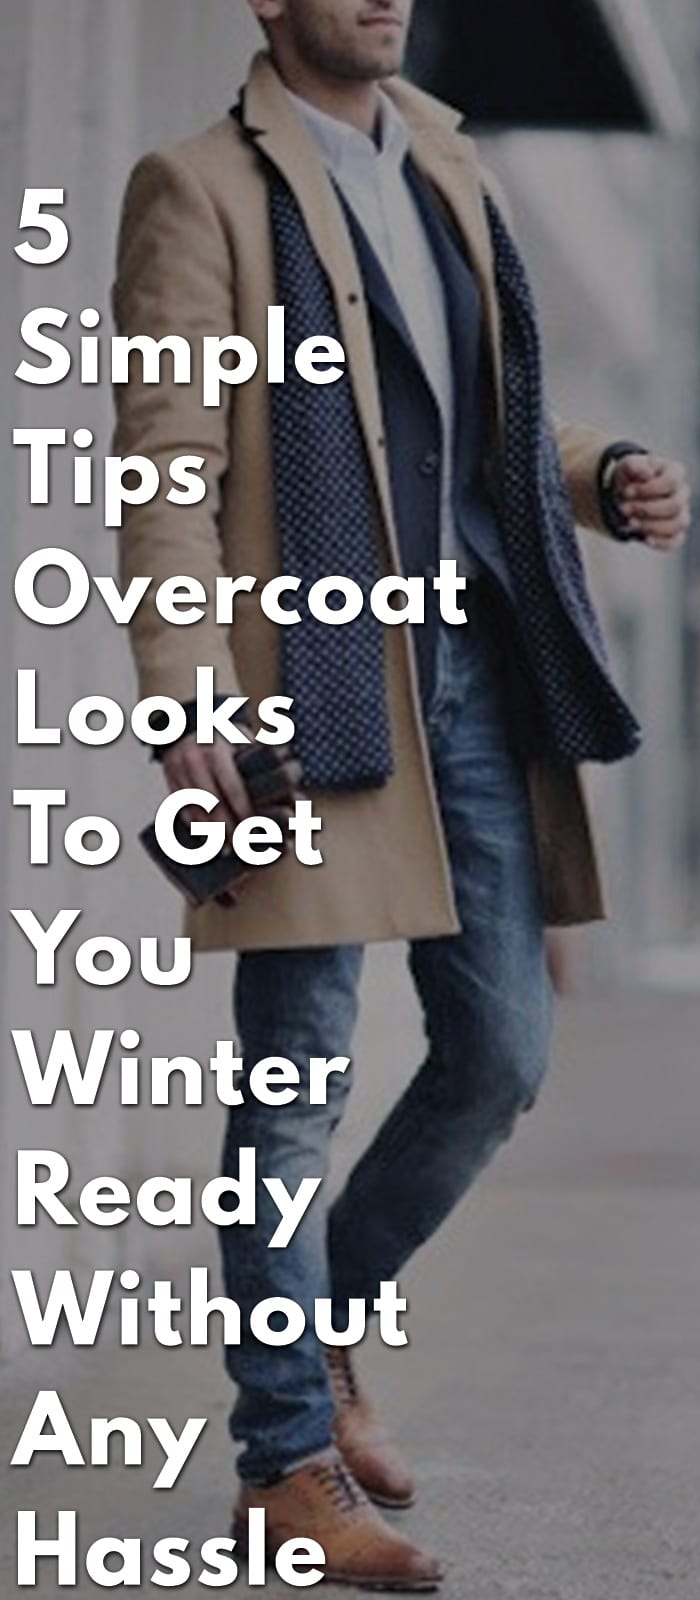 5-Simple-Tips-Overcoat-Looks-To-Get-You-Winter-Ready-Without-Any-Hassle